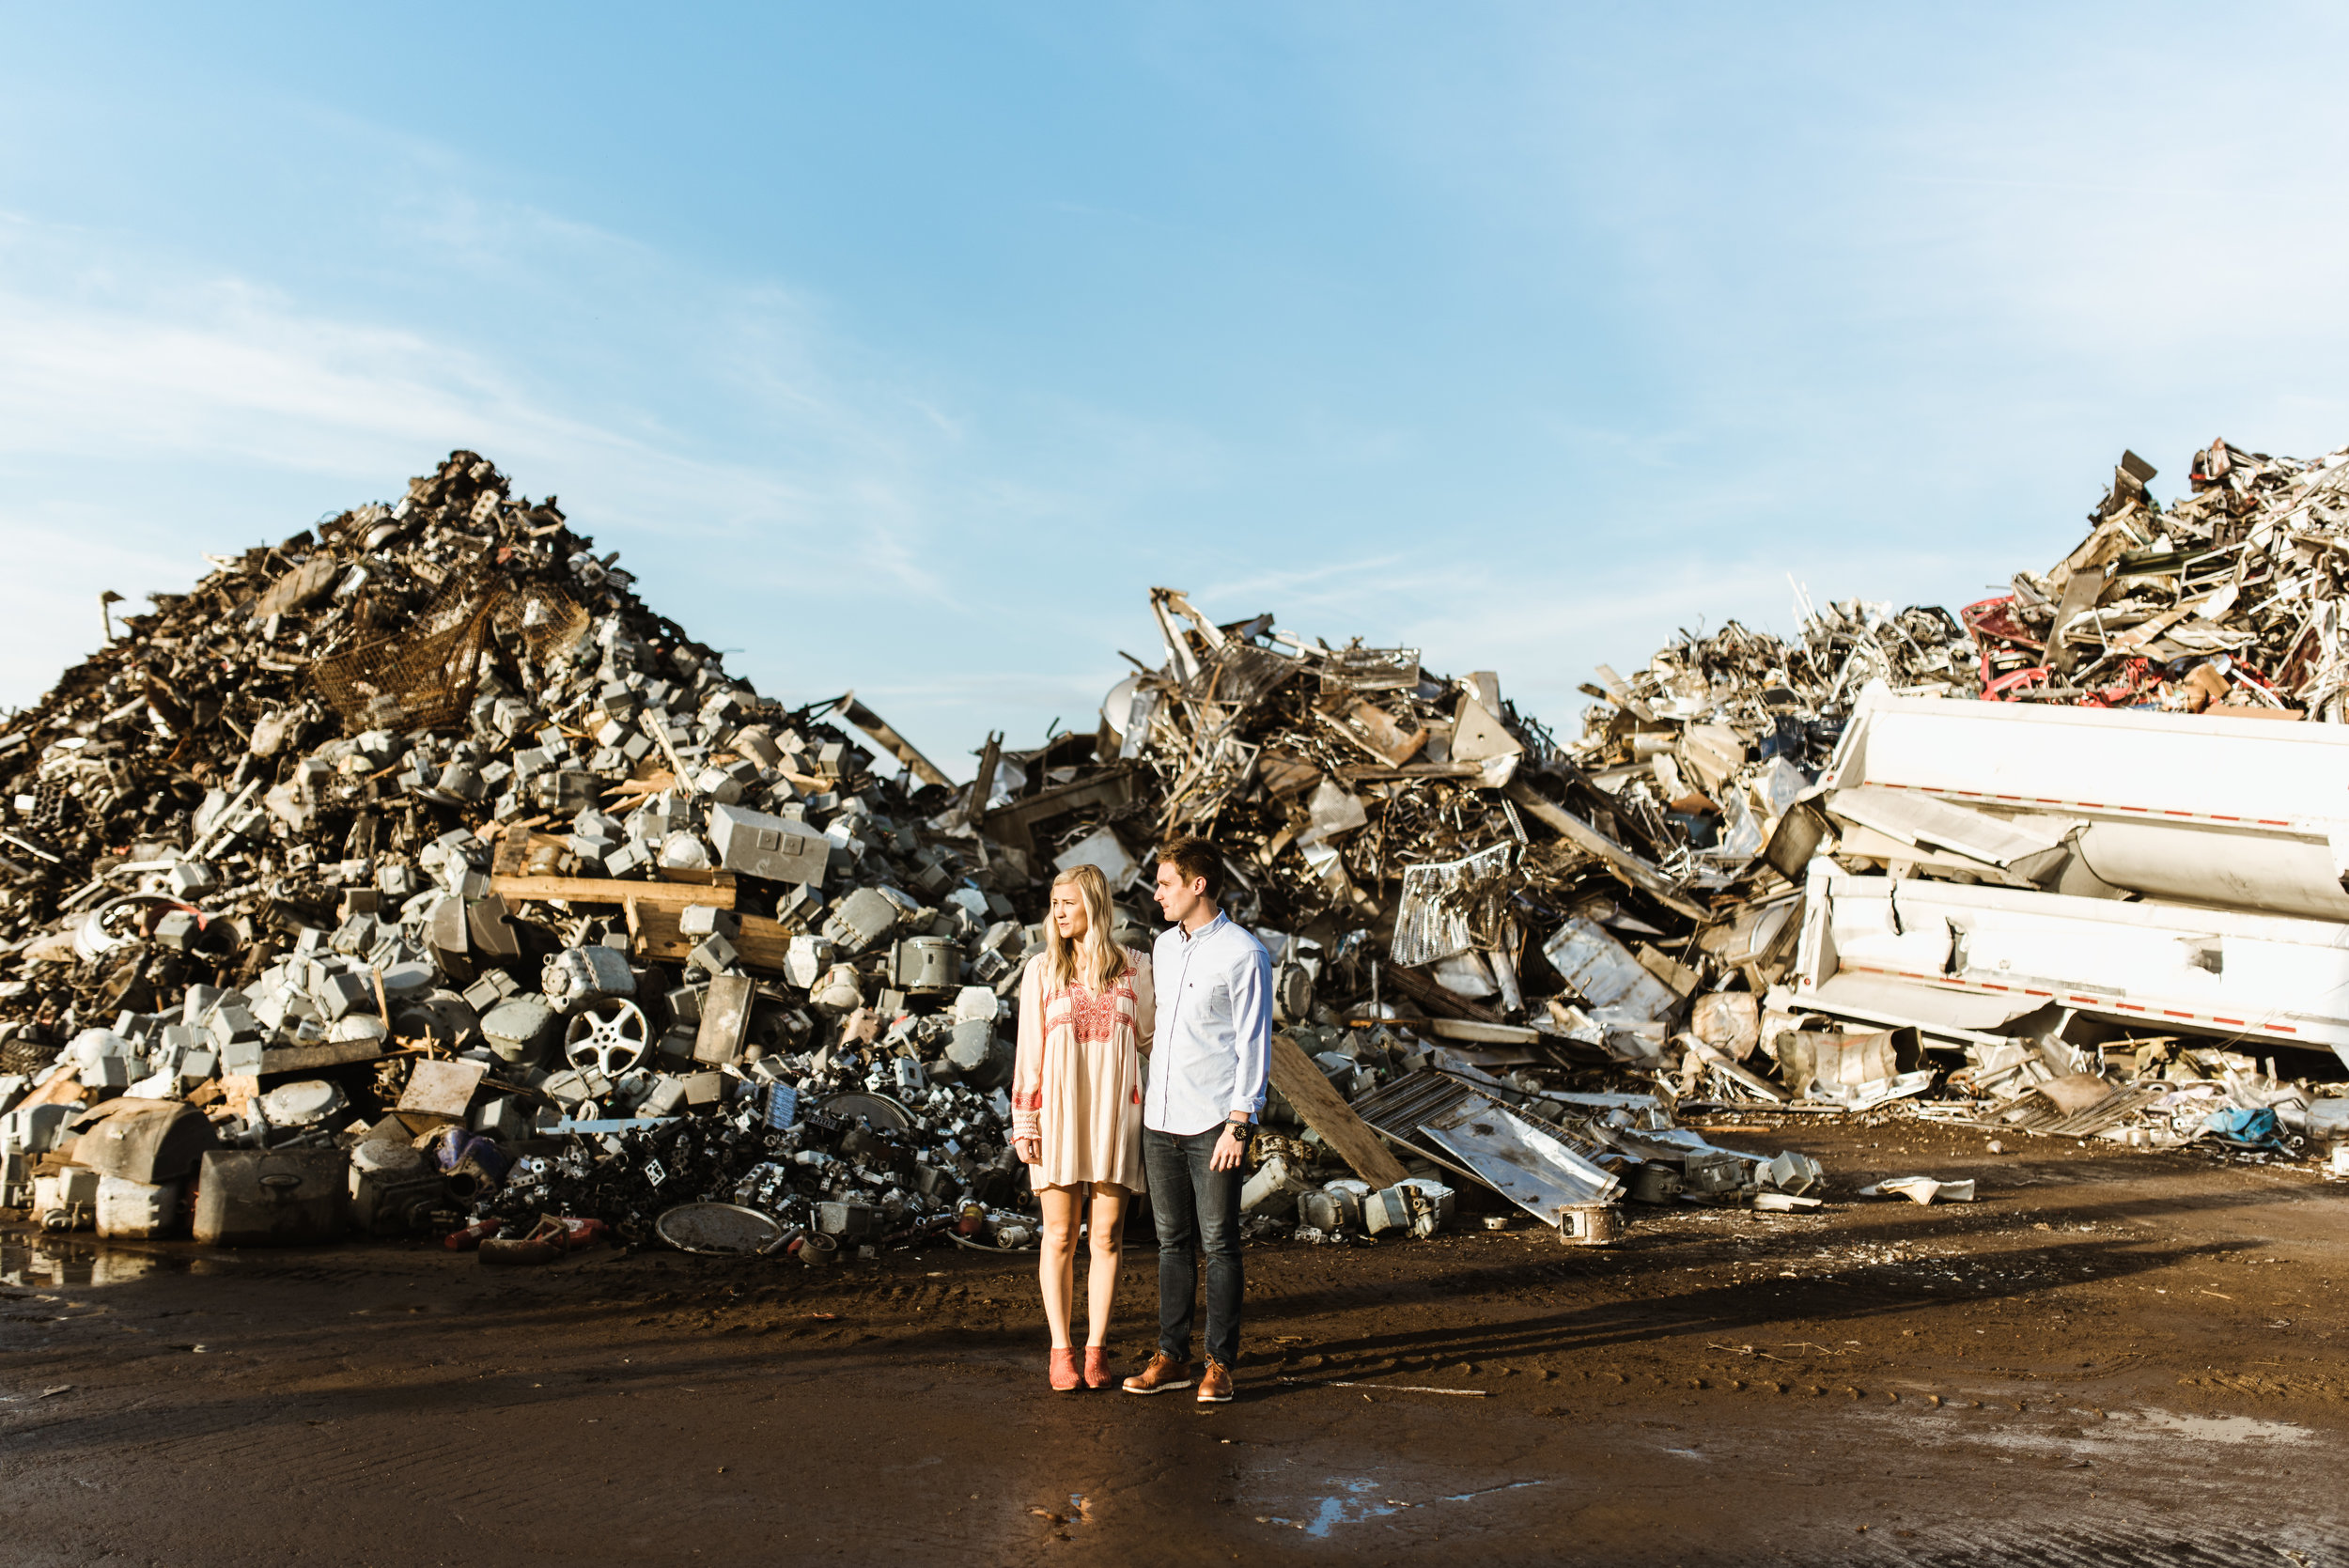 For this session, I had Mandy and Kevin meet me in a scrapyard at sunrise. Here's juxtaposition at work again. She's a nice dress and amazing shoes while Keven sports a contrasting button up, fitted jeans and nice shoes.